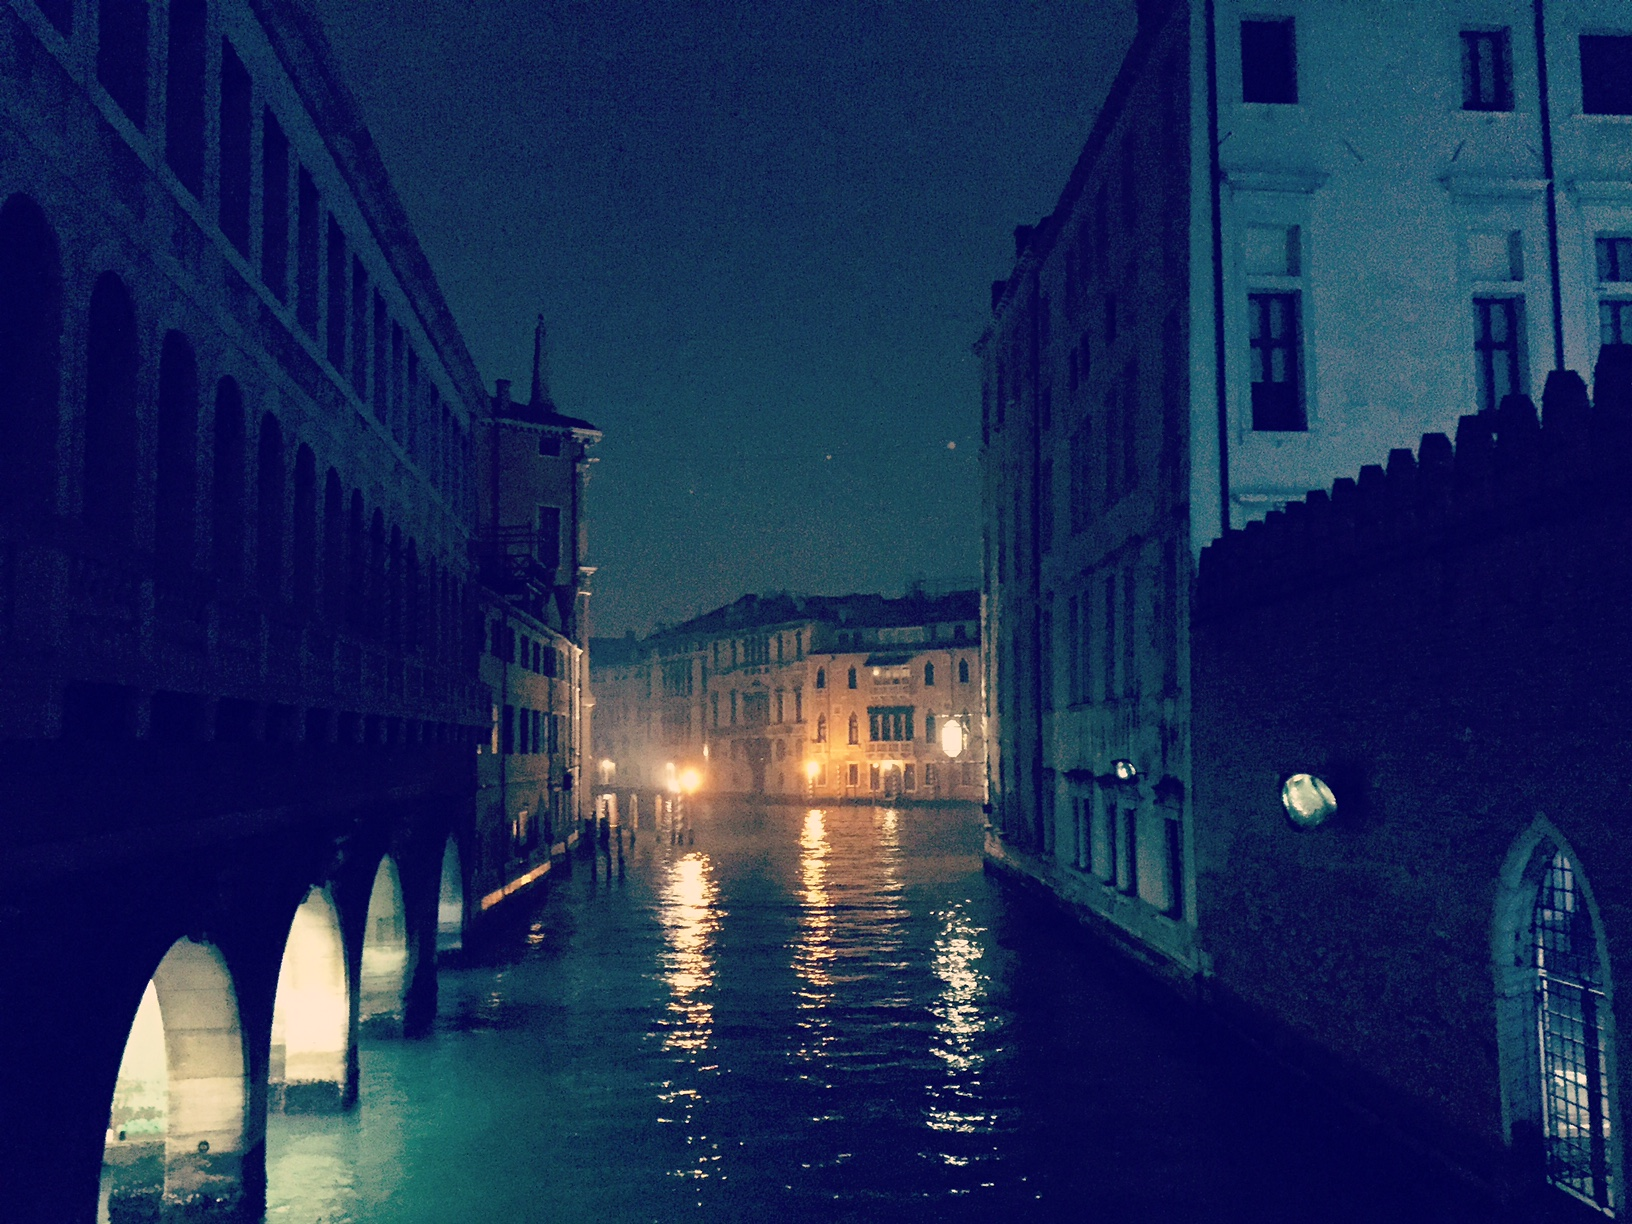 a night in Italy